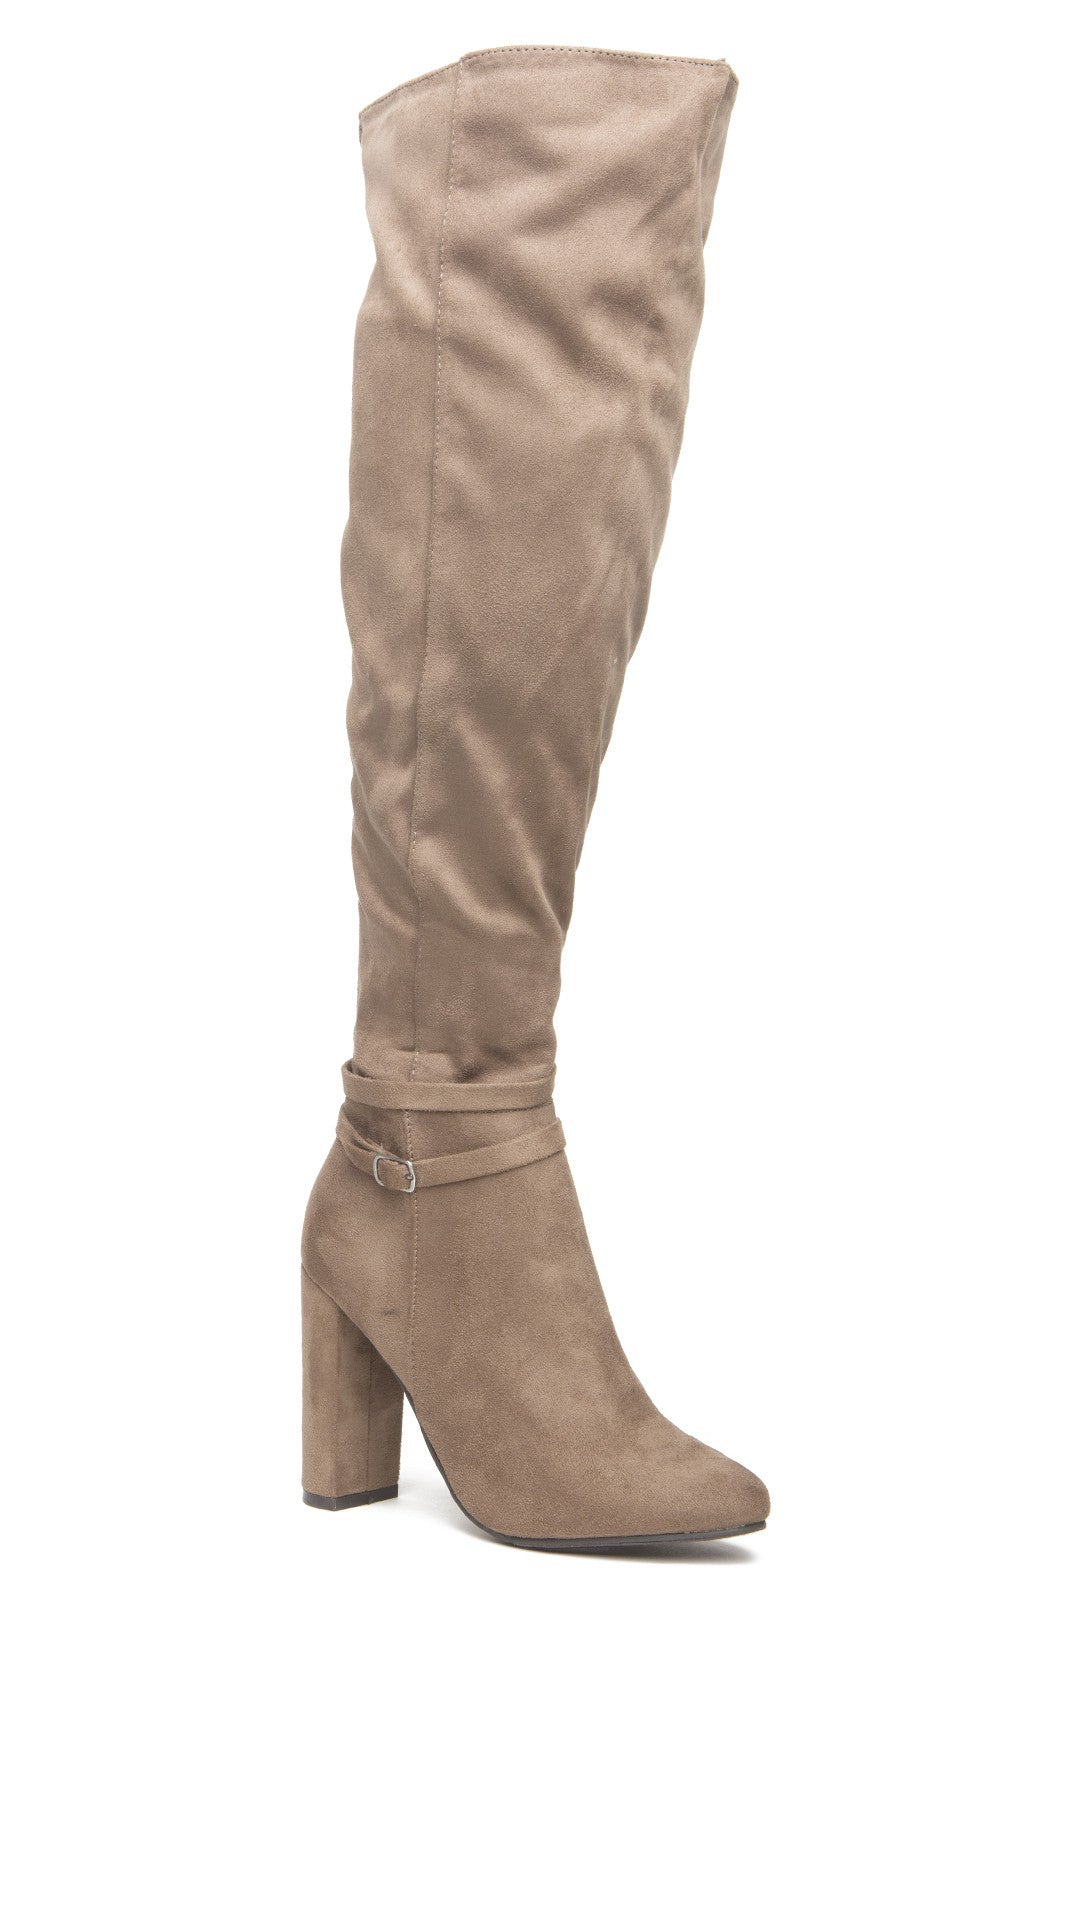 suede knee high boot with stacked heel angl